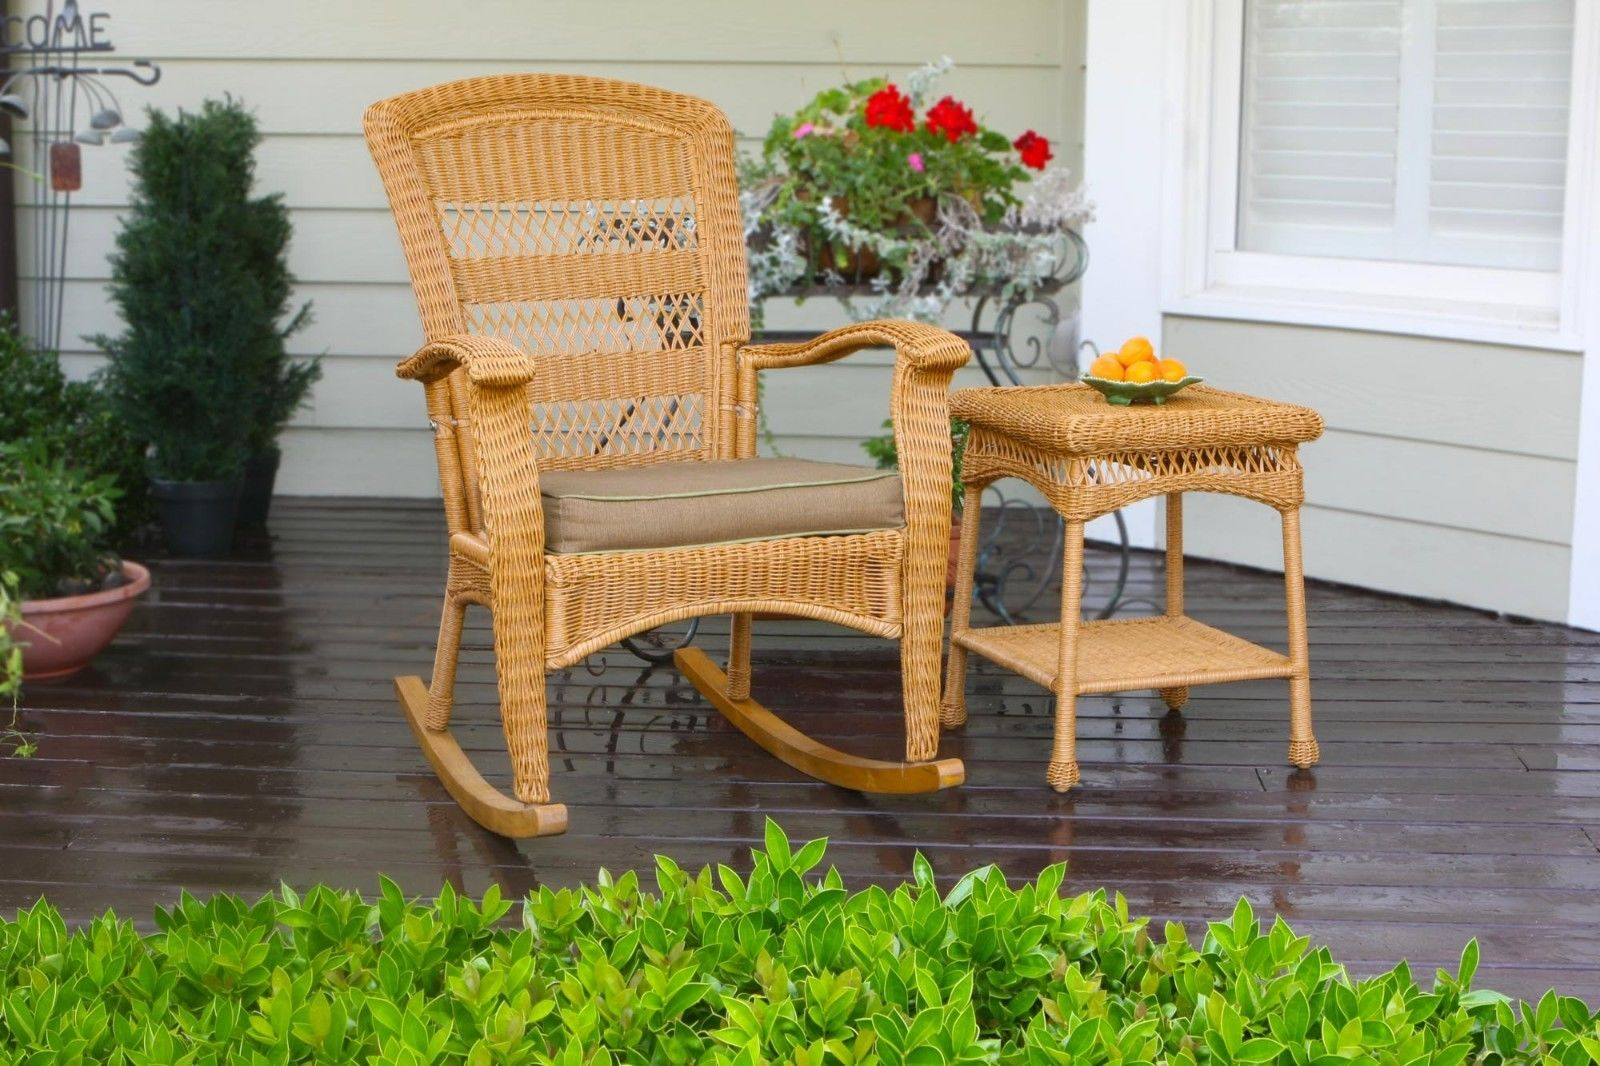 #10 - Outdoor Patio Plantation Style Rocking Chair with Southwest Amber Resin Wicker